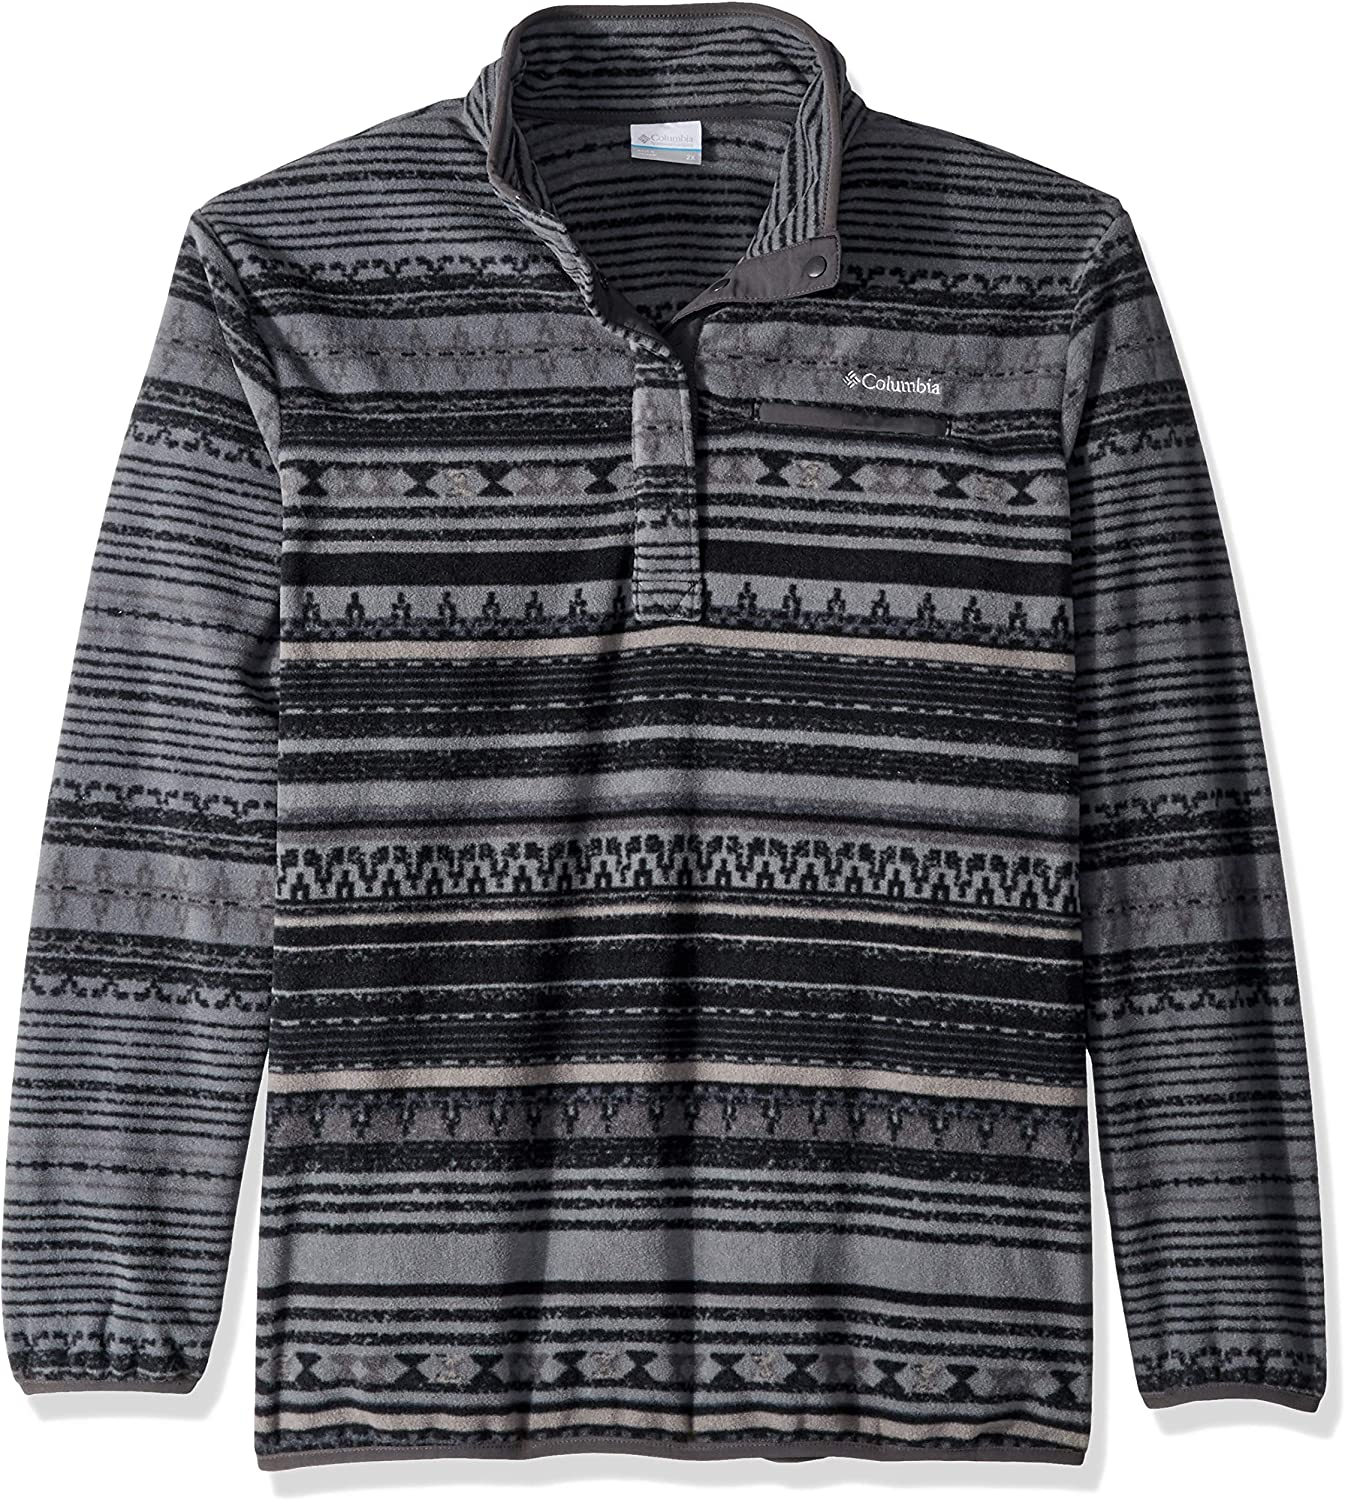 Columbia Womens Size Sweater Season Printed Pull Over Plus